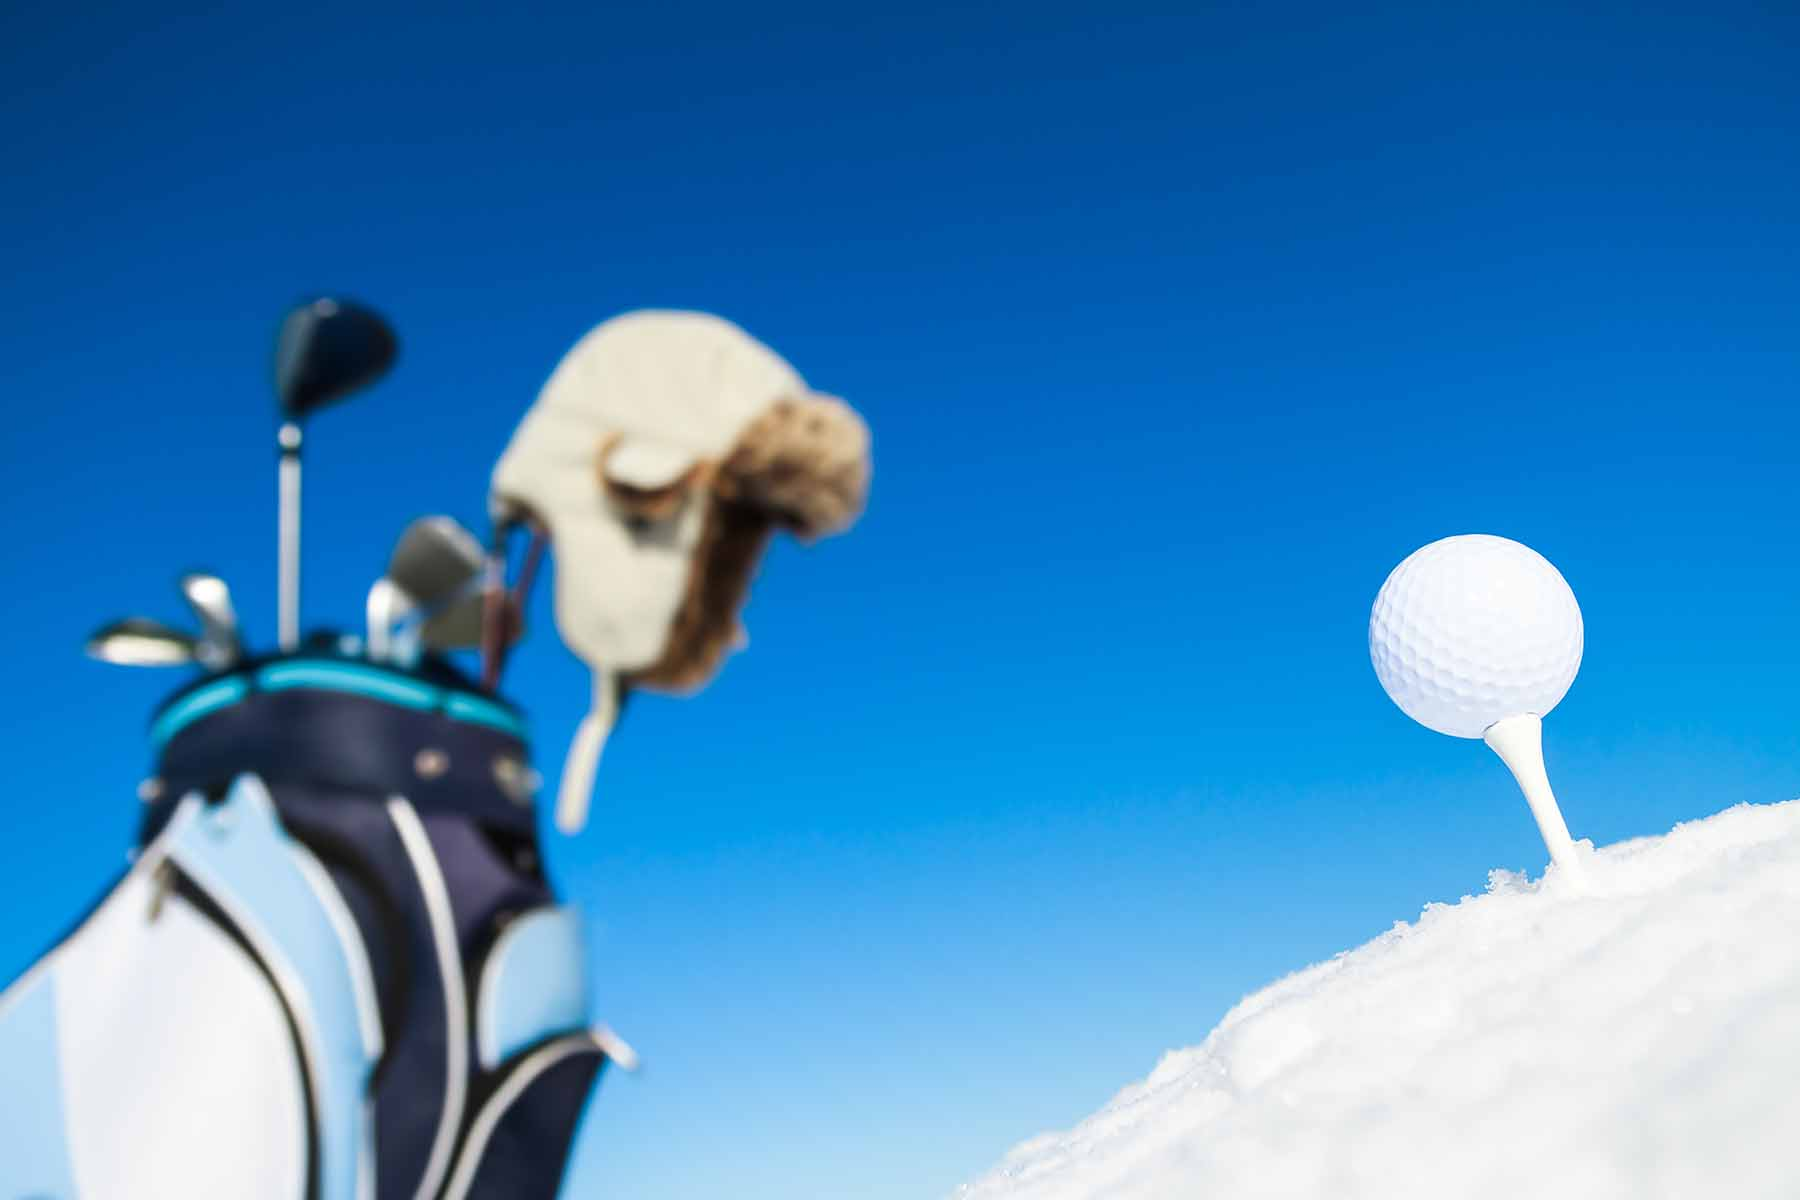 Golf clubs and a golf ball in the winter